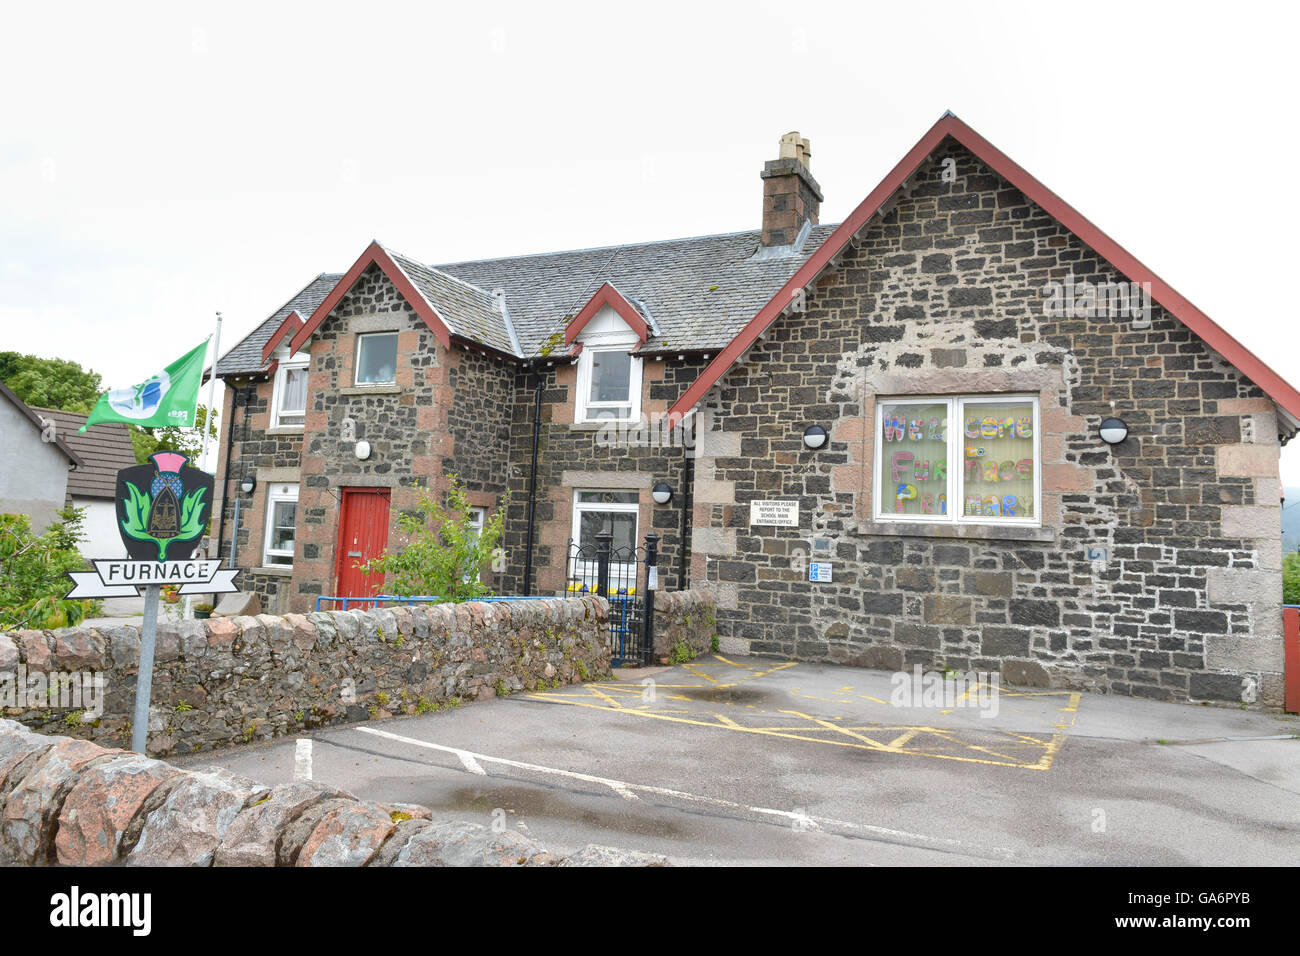 Furnace Primary School - Furnace is a village in Argyll on the west coast of Scotland on the north shore of Loch - Stock Image